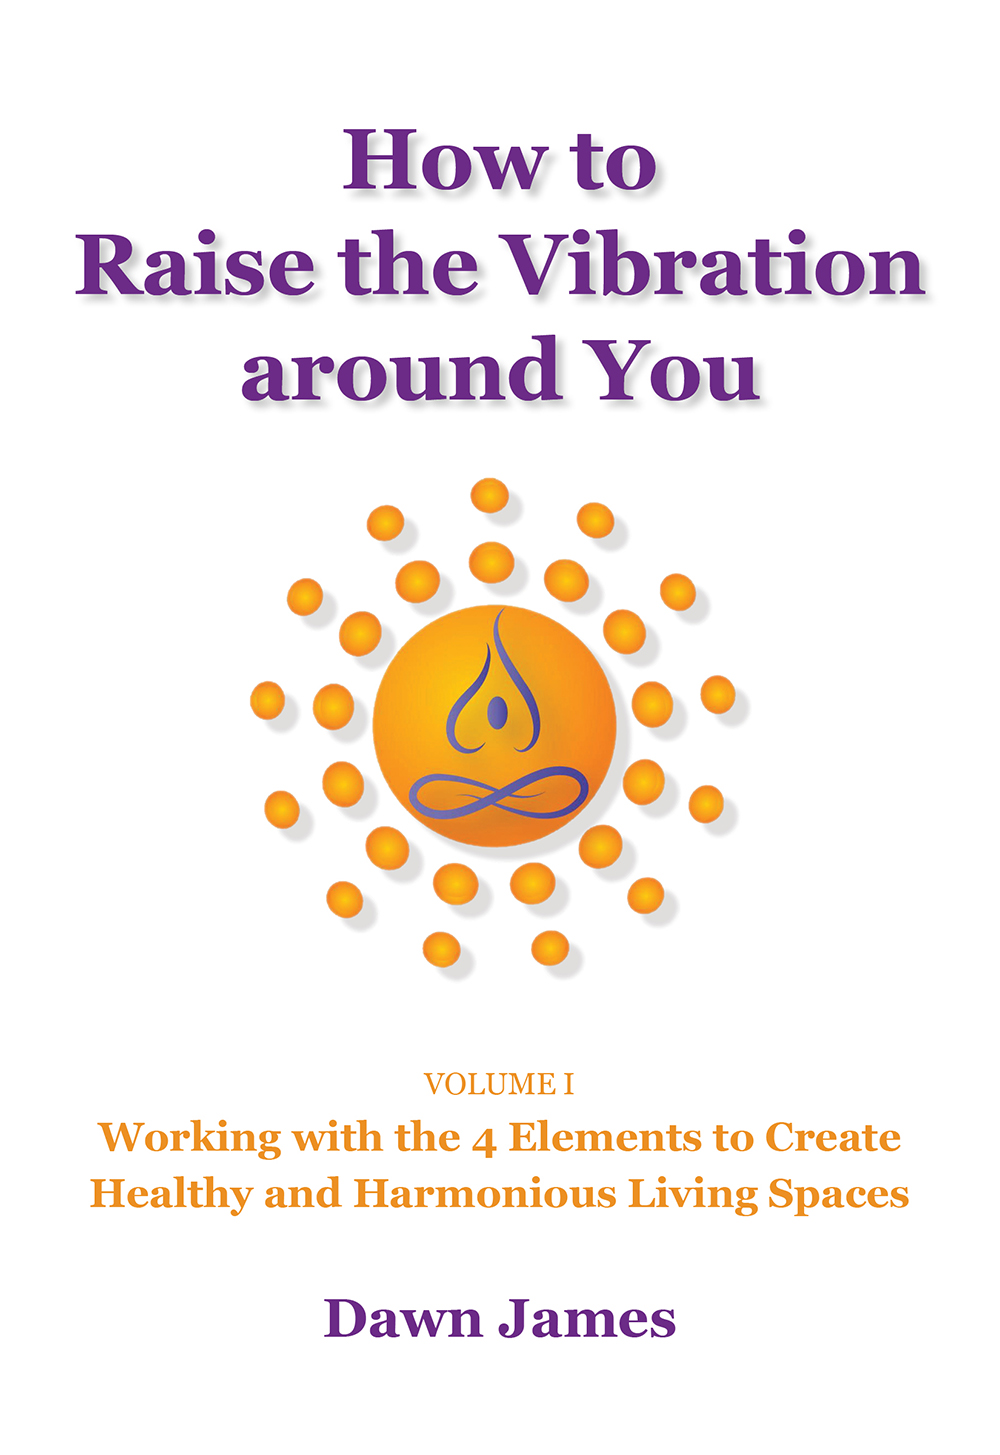 How to Raise the Vibration around You